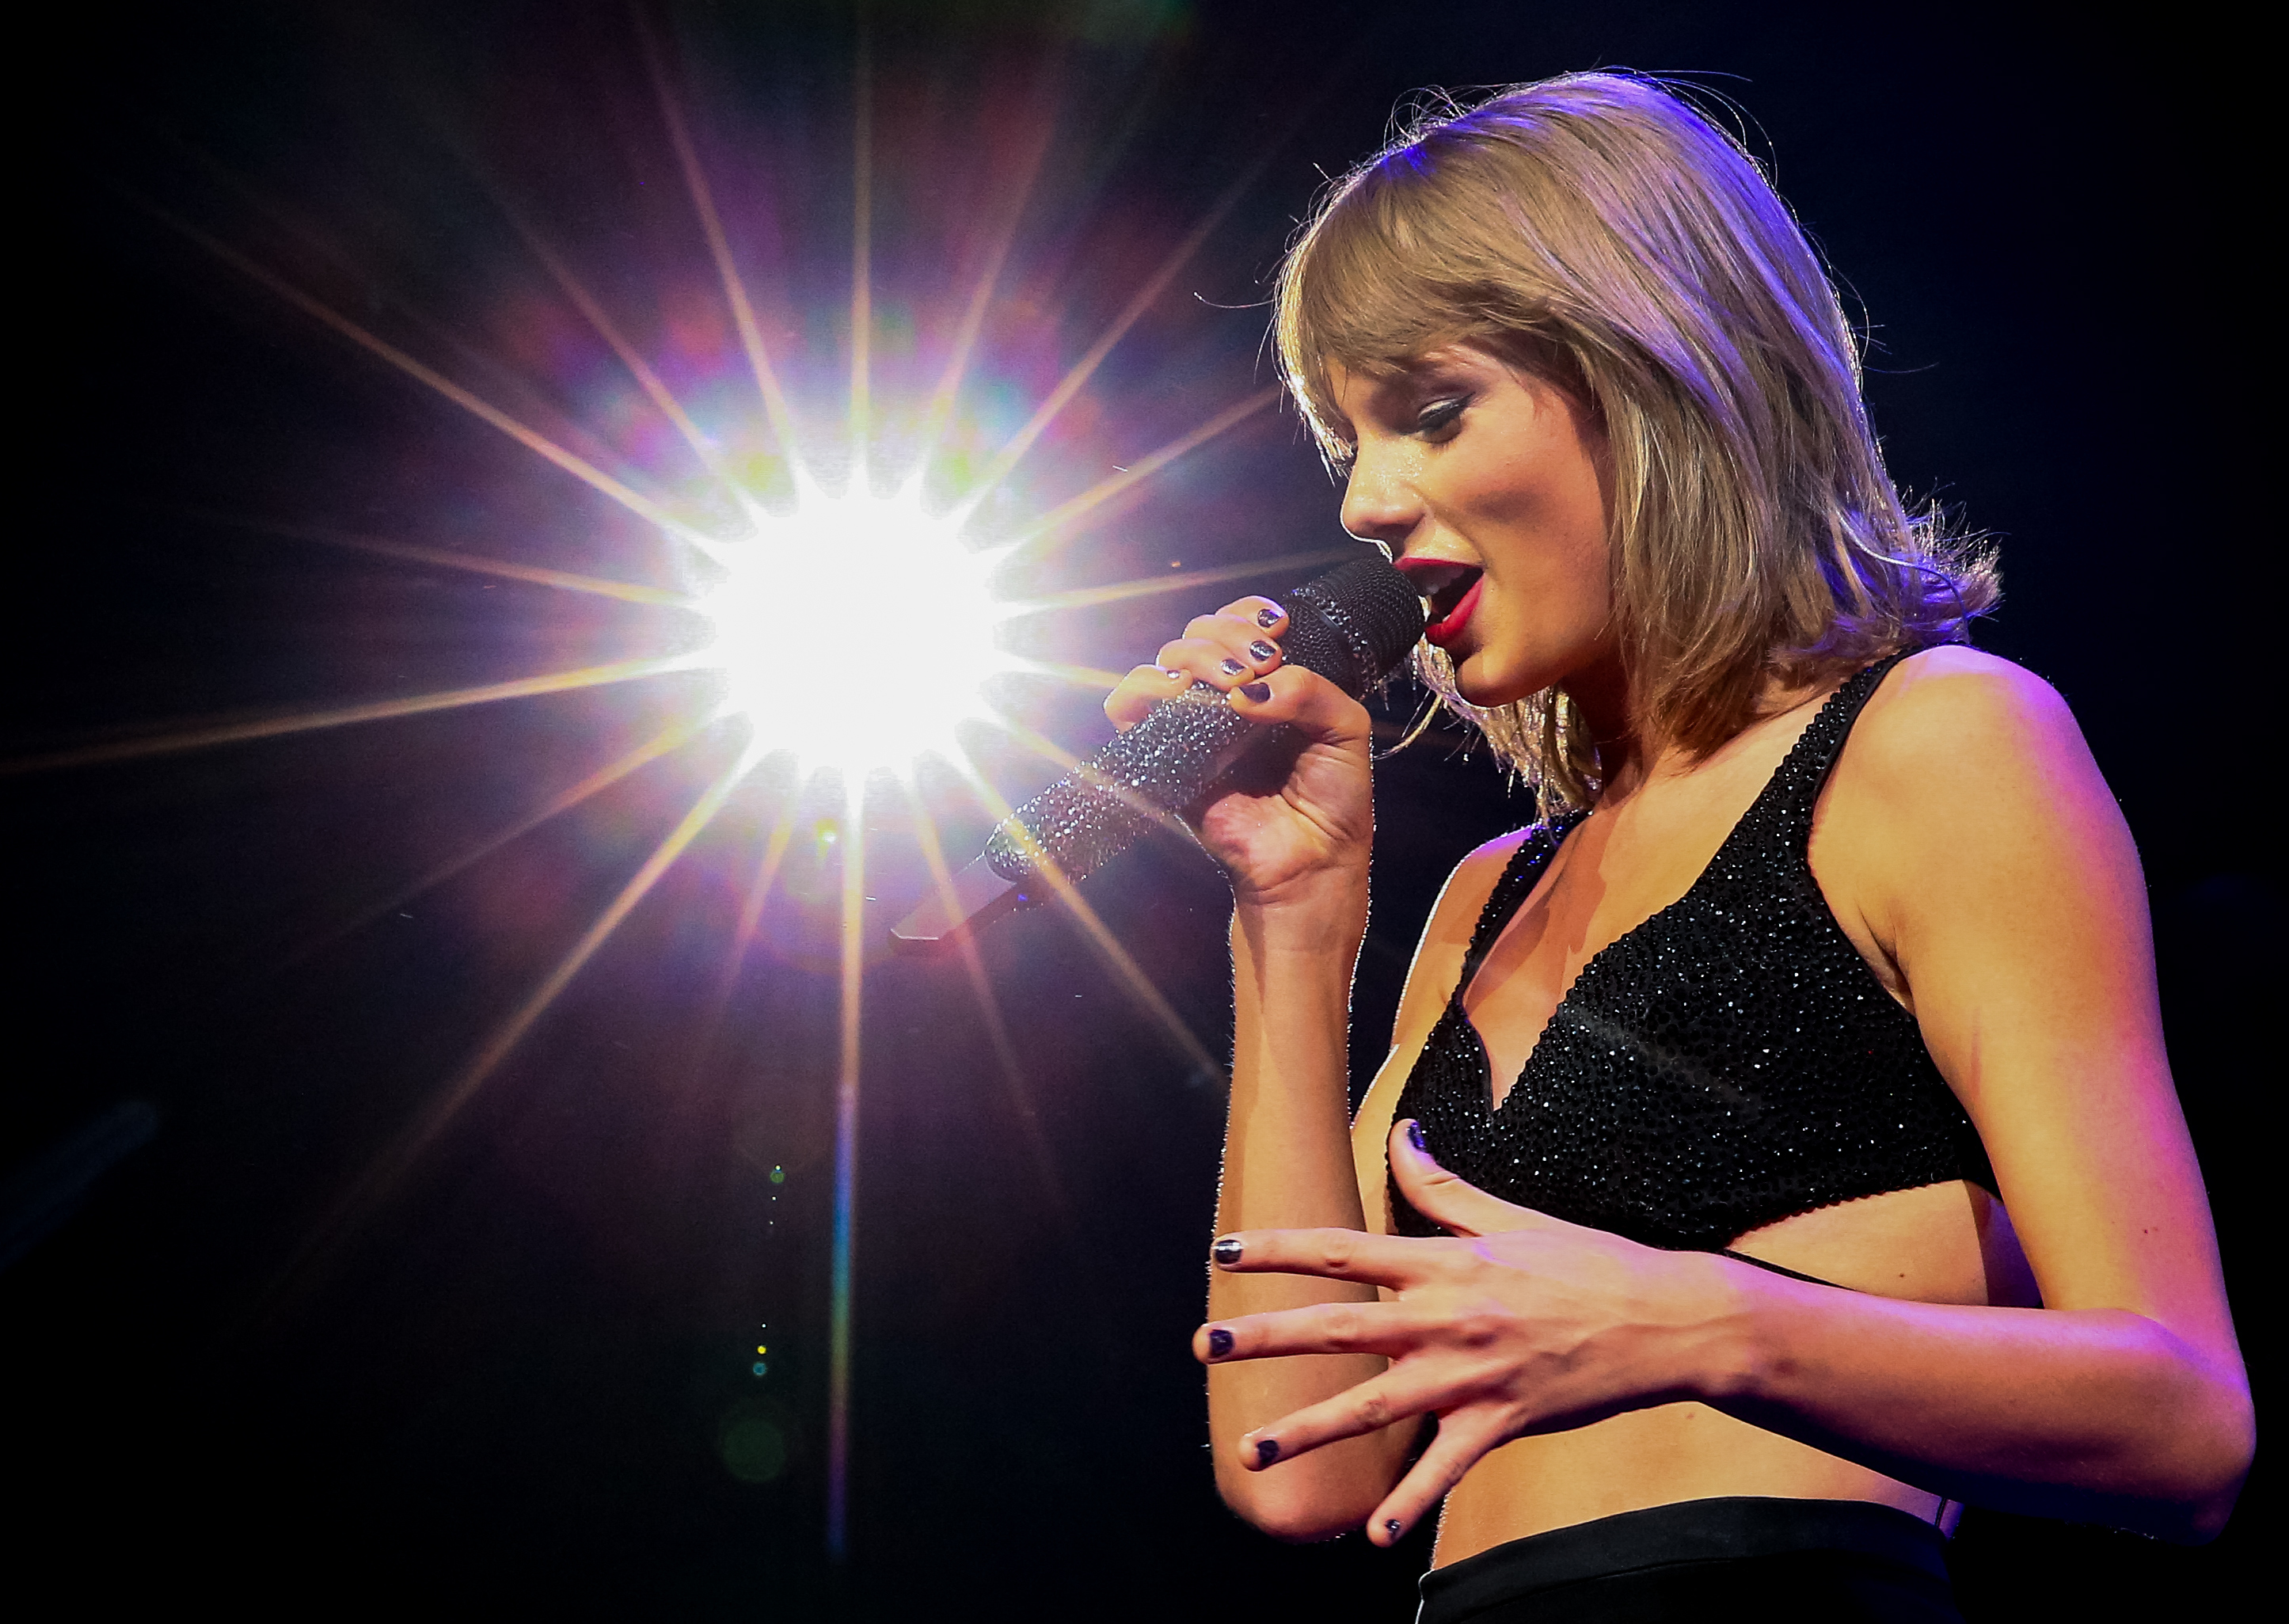 a '1989'-inspired taylor swift halloween costume that will make you